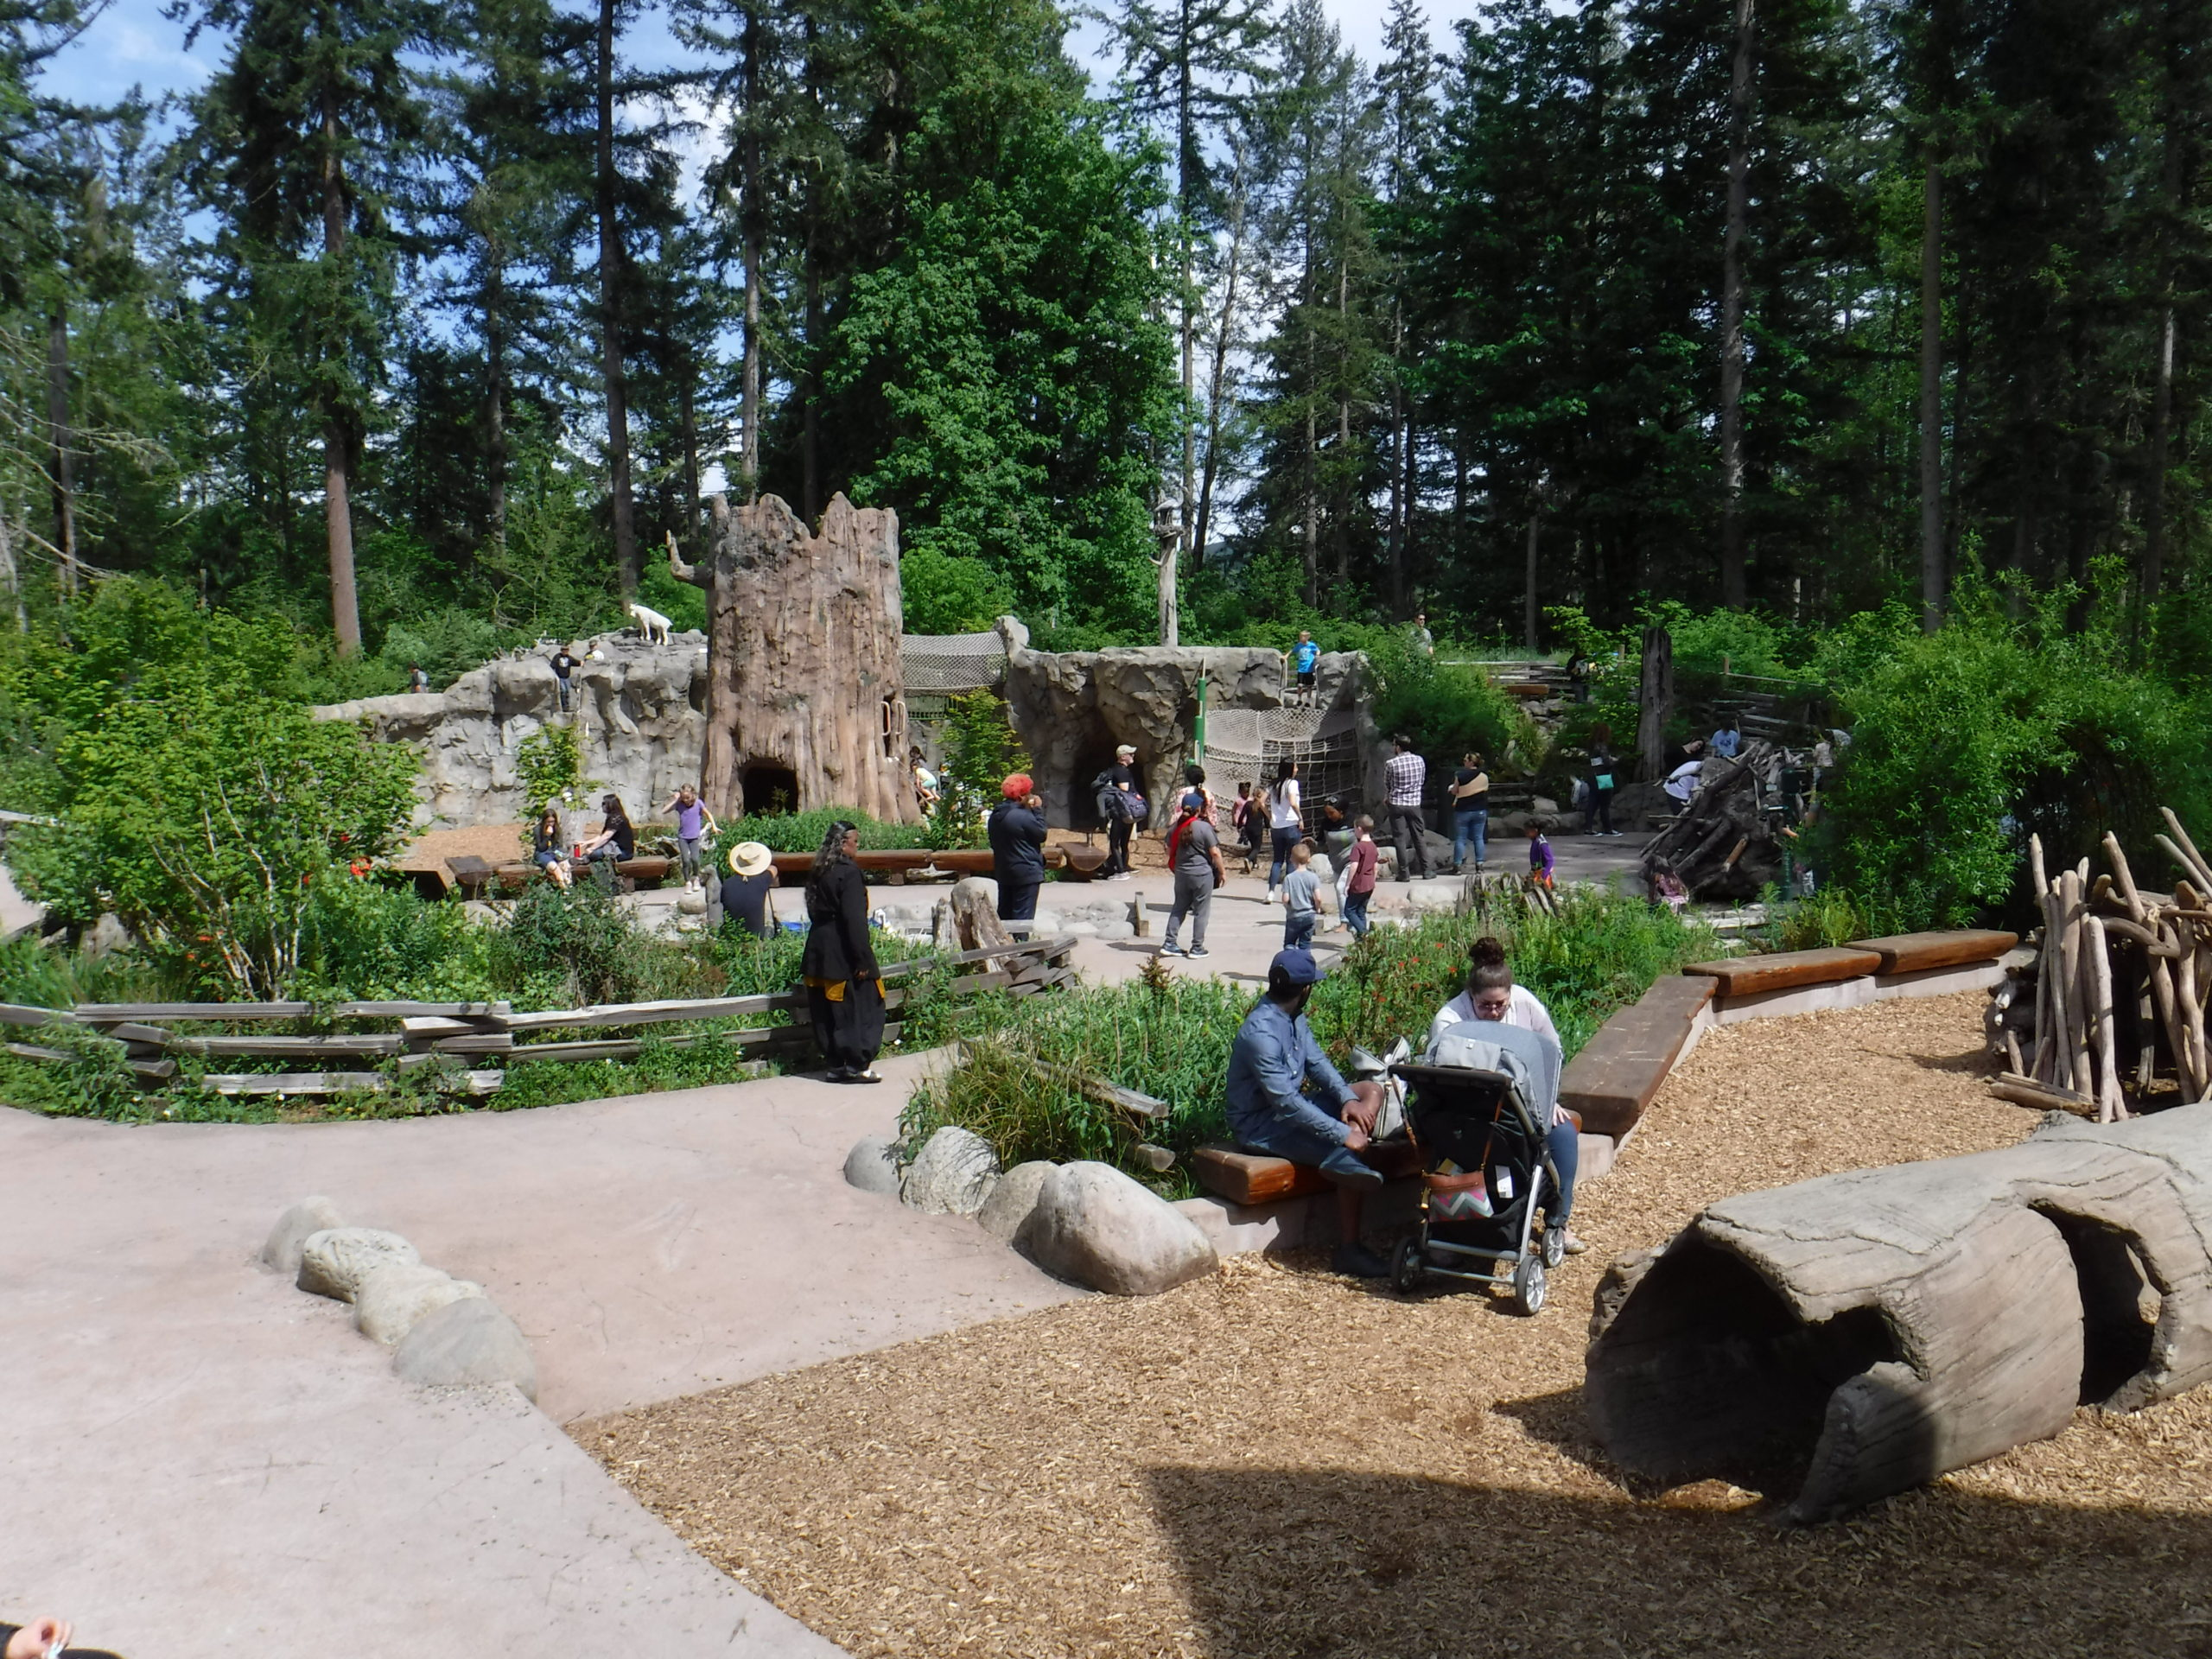 Northwest Trek Wildlife Park